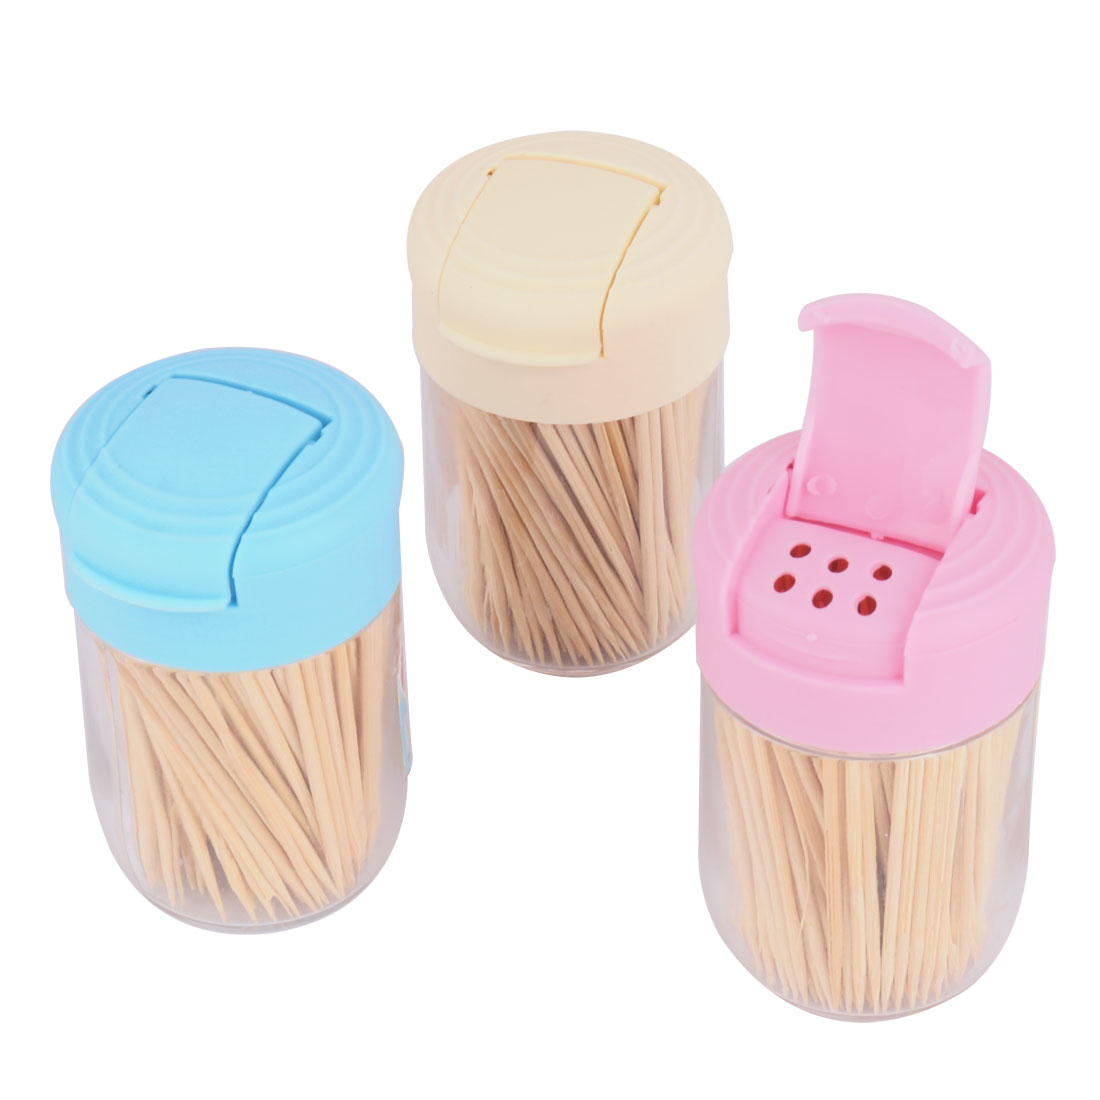 Home Restaurant Table Utensil Bamboo Toothpicks Holder Box Container 3pcs